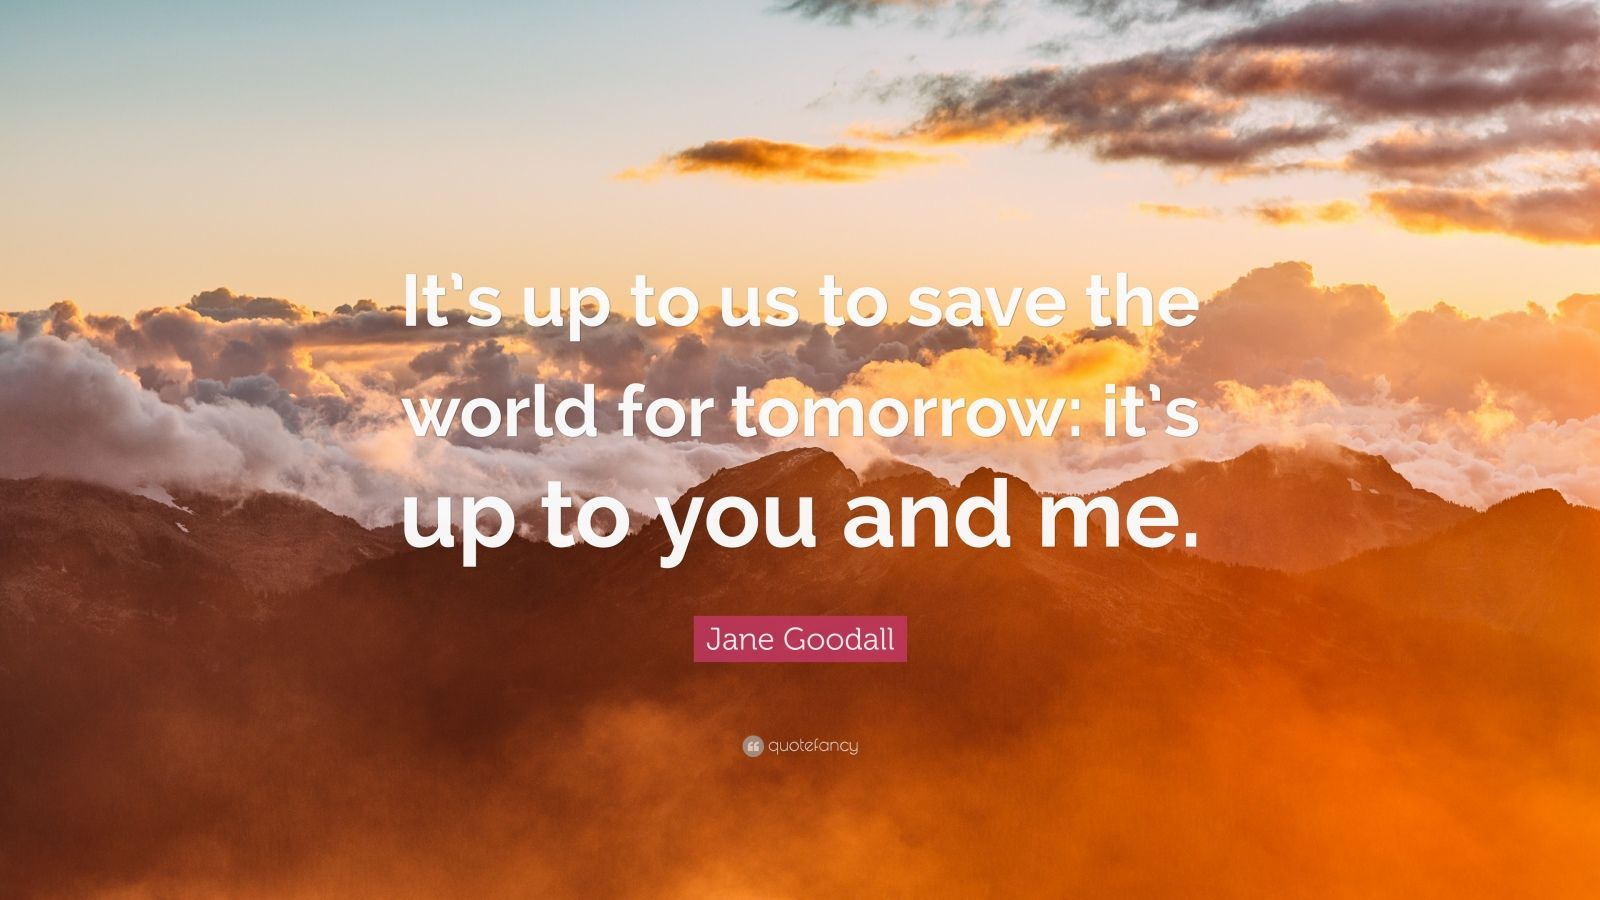 """Jane Goodall Quote: """"It's up to us to save the world for tomorrow: it's up to you and me."""""""